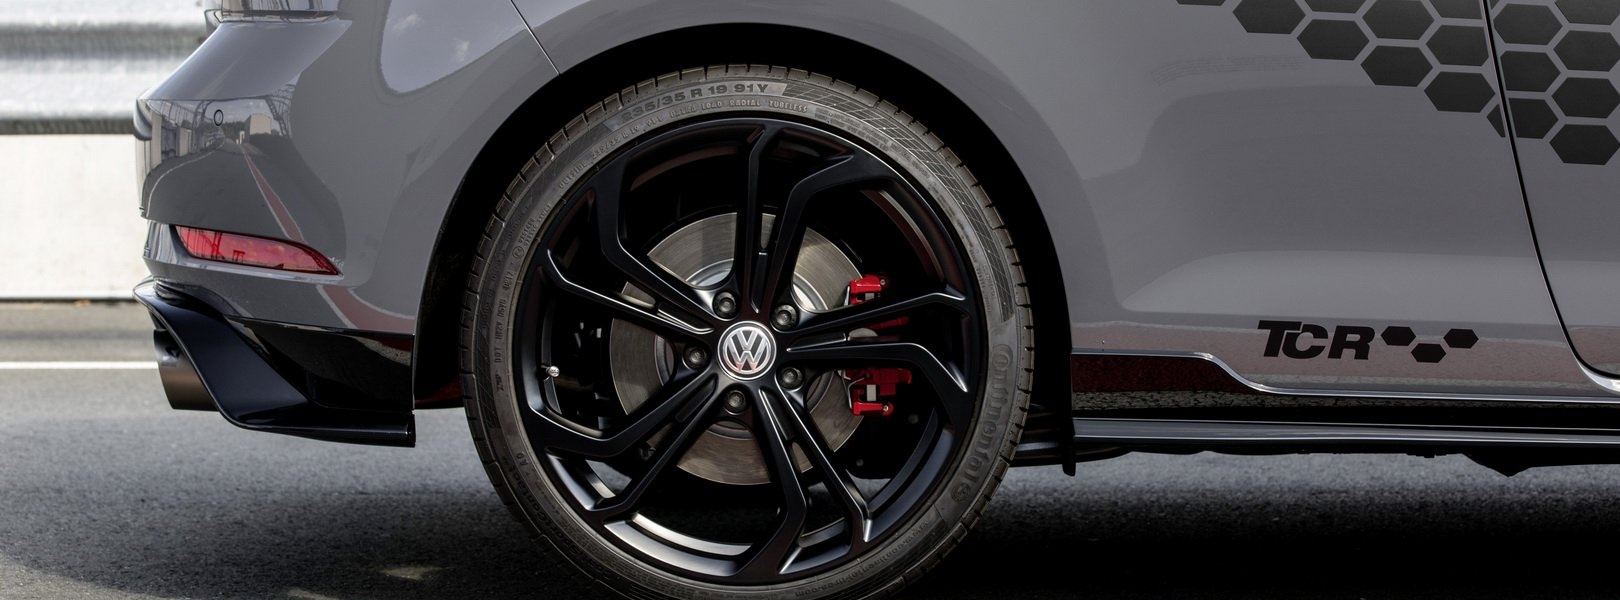 2020-vw-golf-gti-tcr-2.jpg